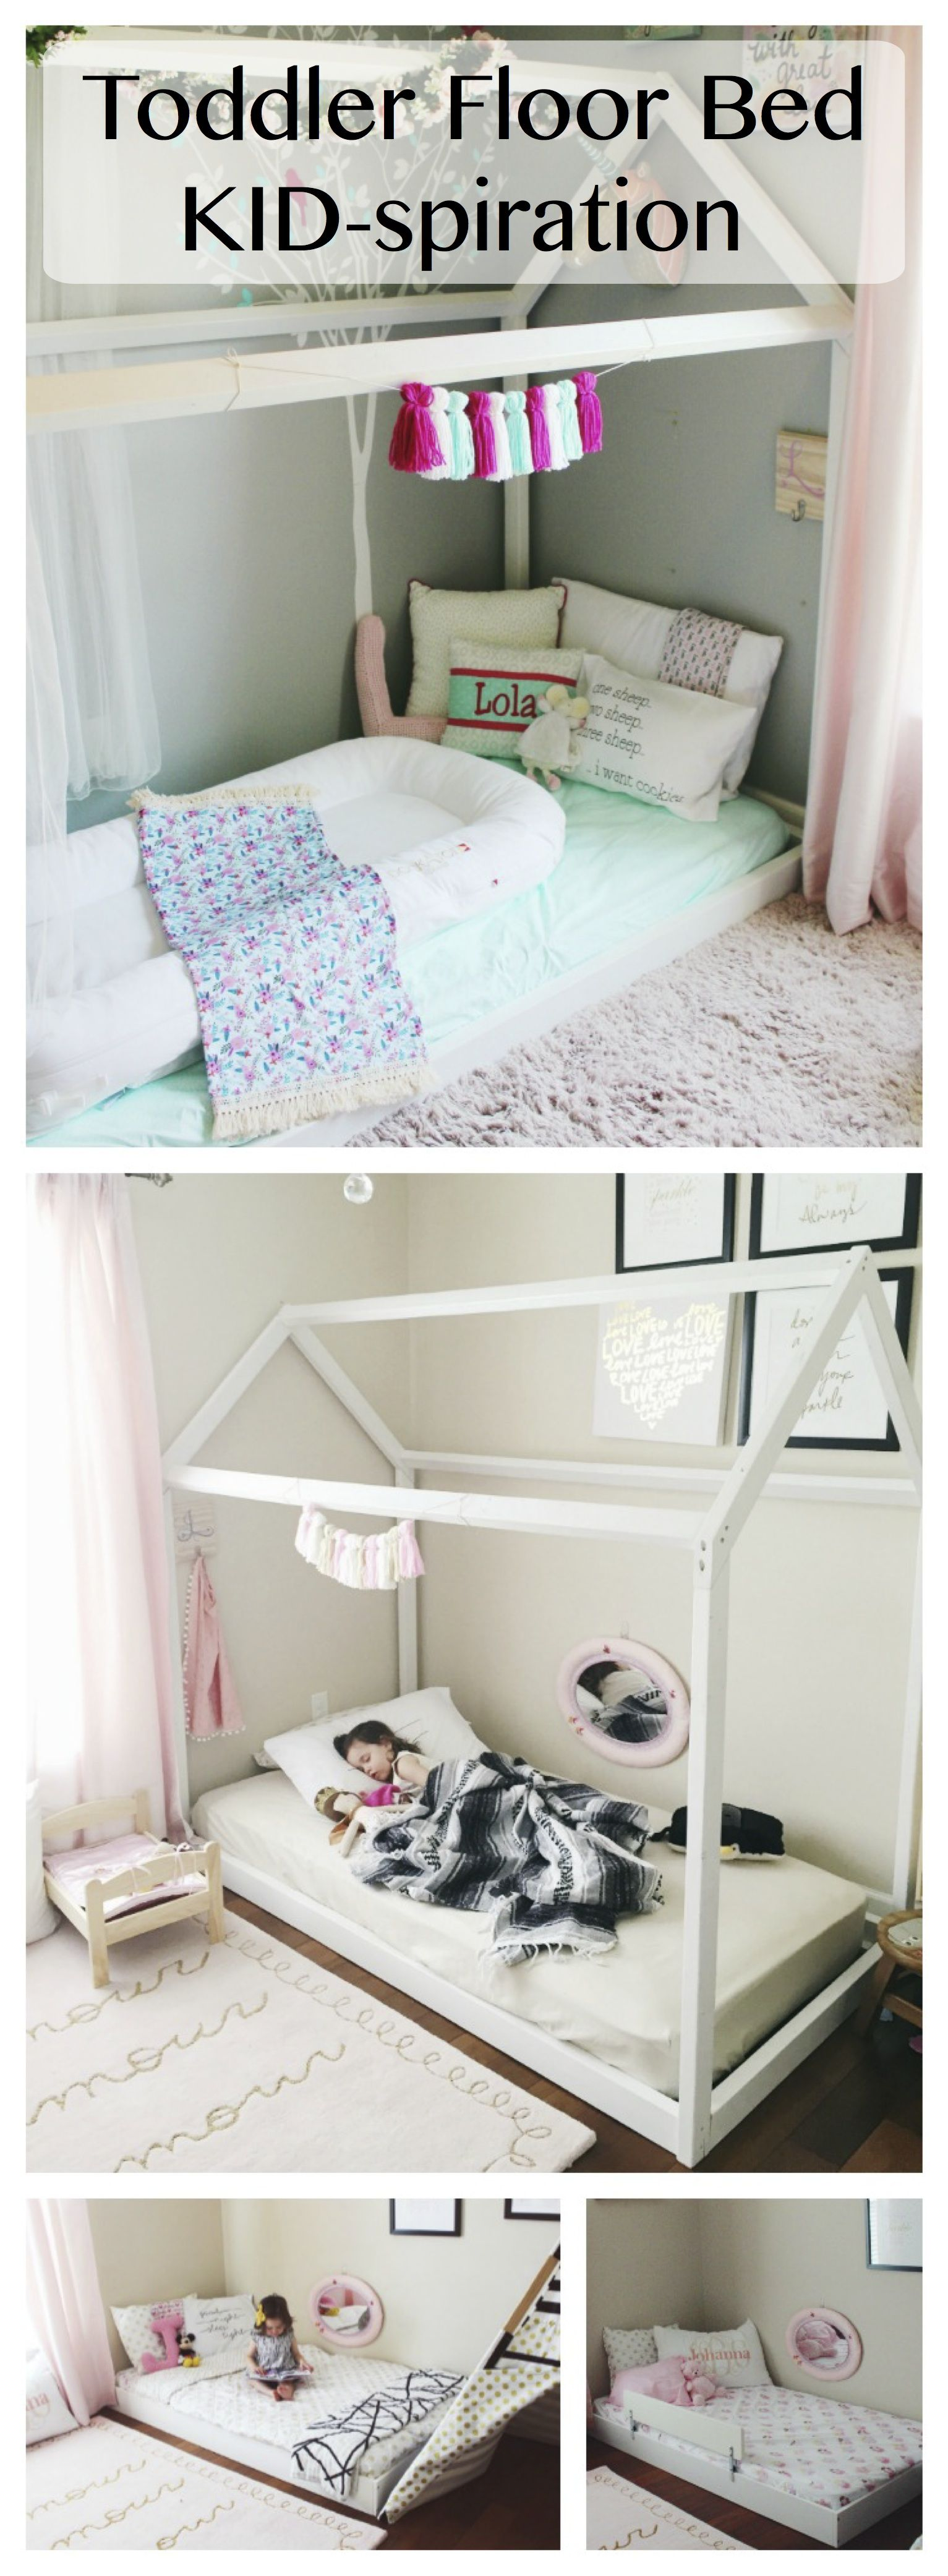 For all your Toddler Floor Bed inspirations and tips visit us at www.ohhappyplay.com